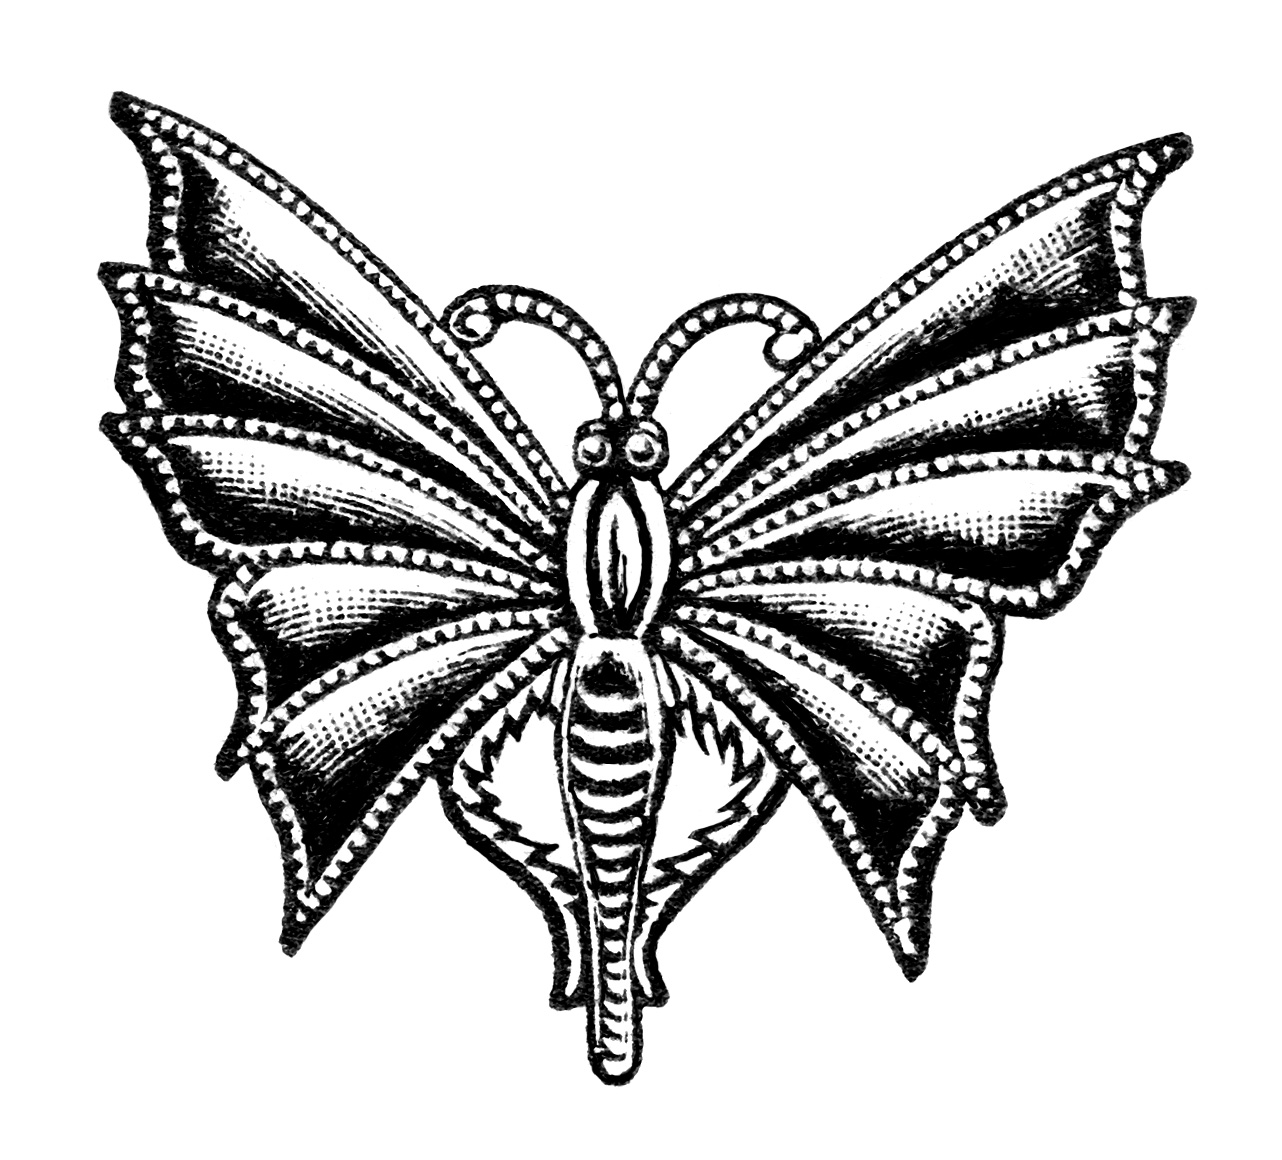 vintage jewelry clip art, antique brooch image, black and white clipart, butterfly pin illustration, antique chatelette